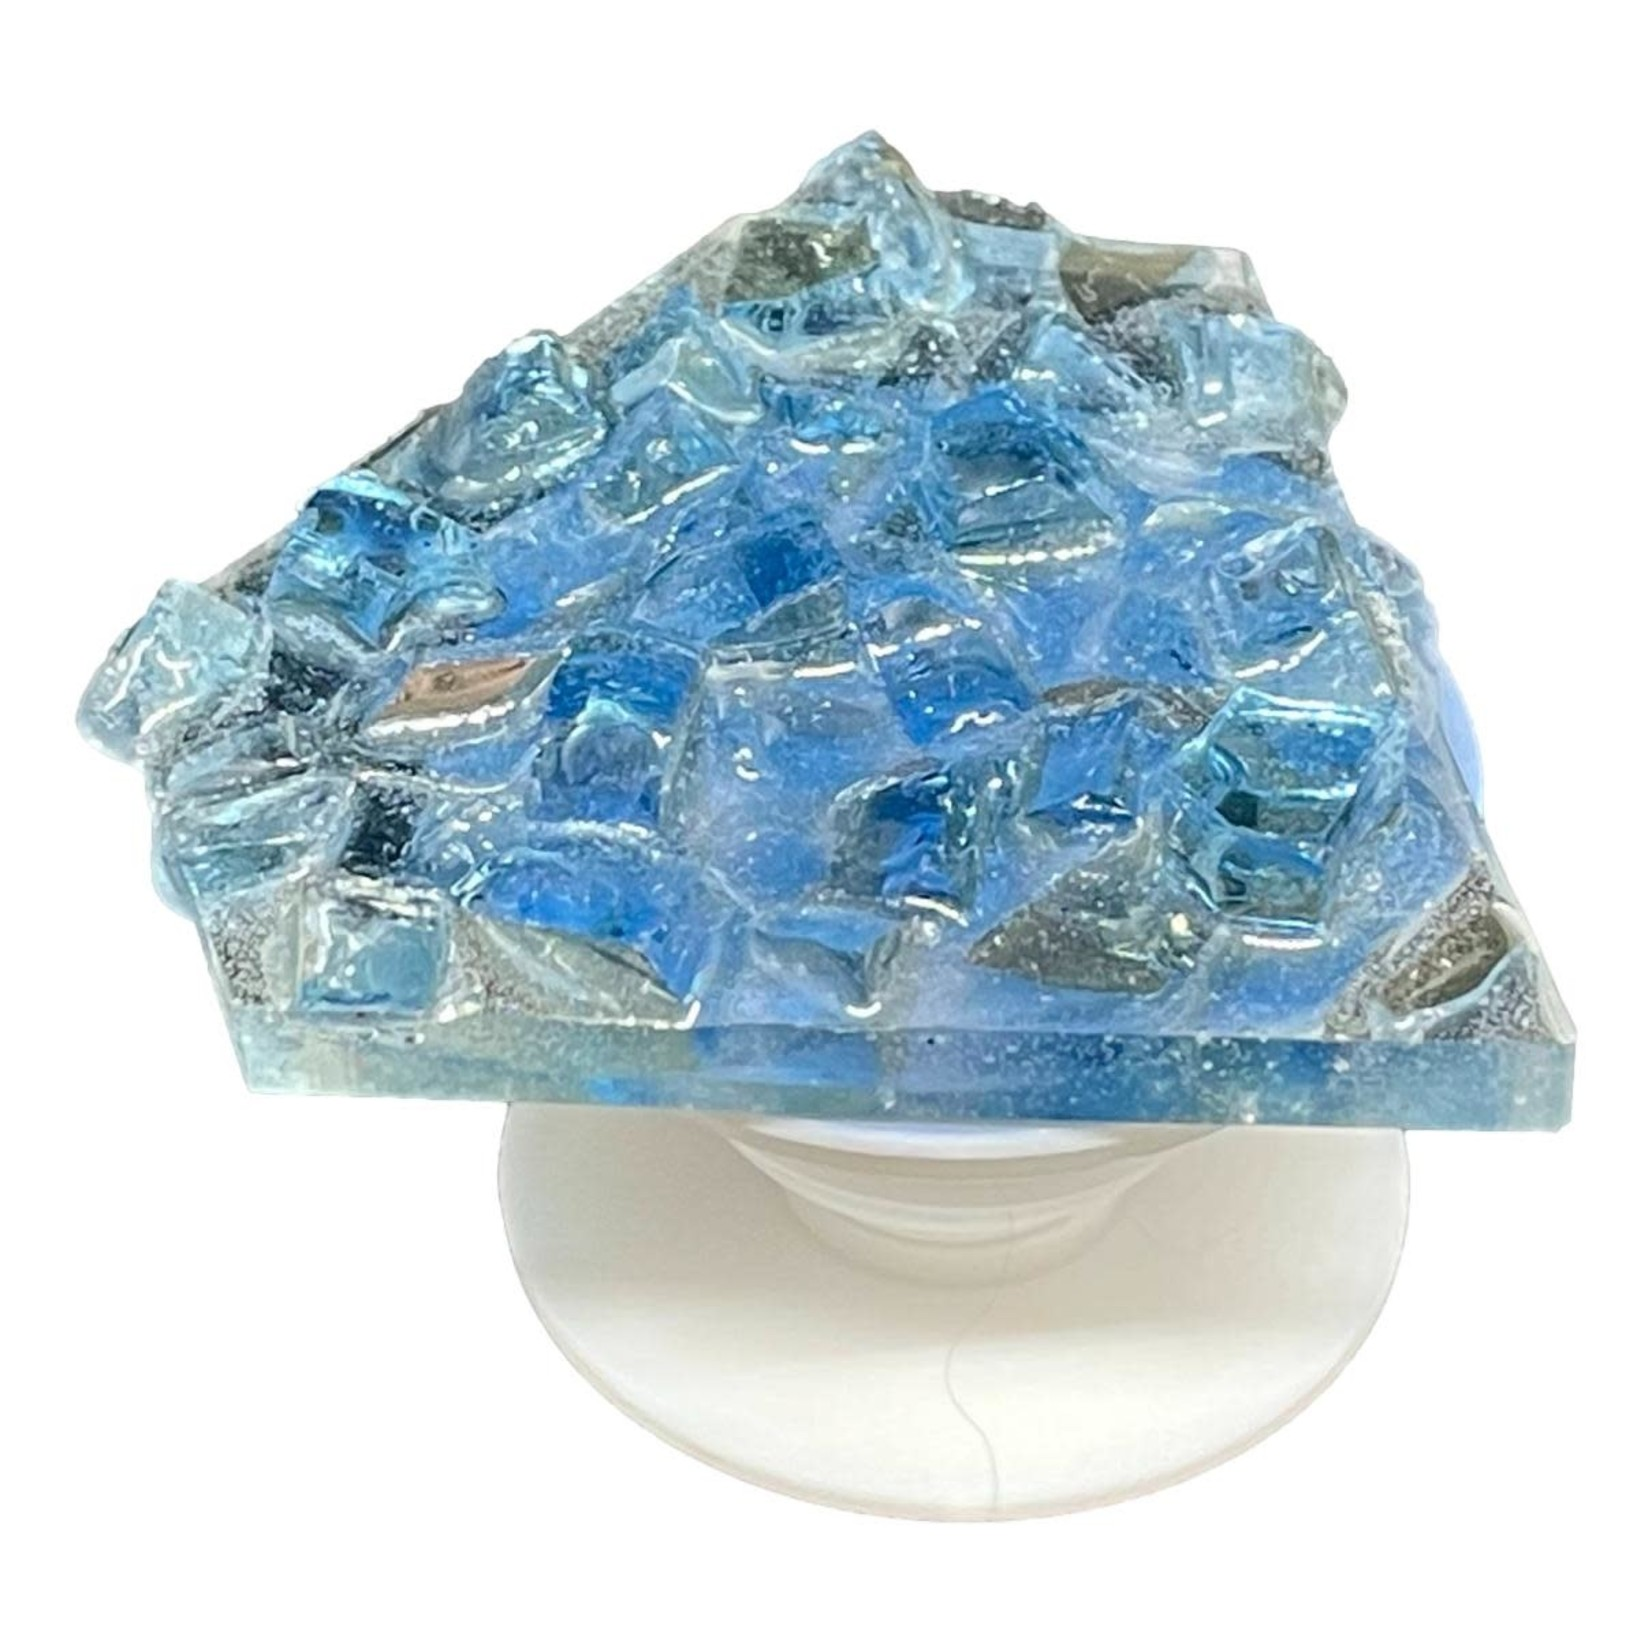 East Coast Sirens Blue Glass Phone Support